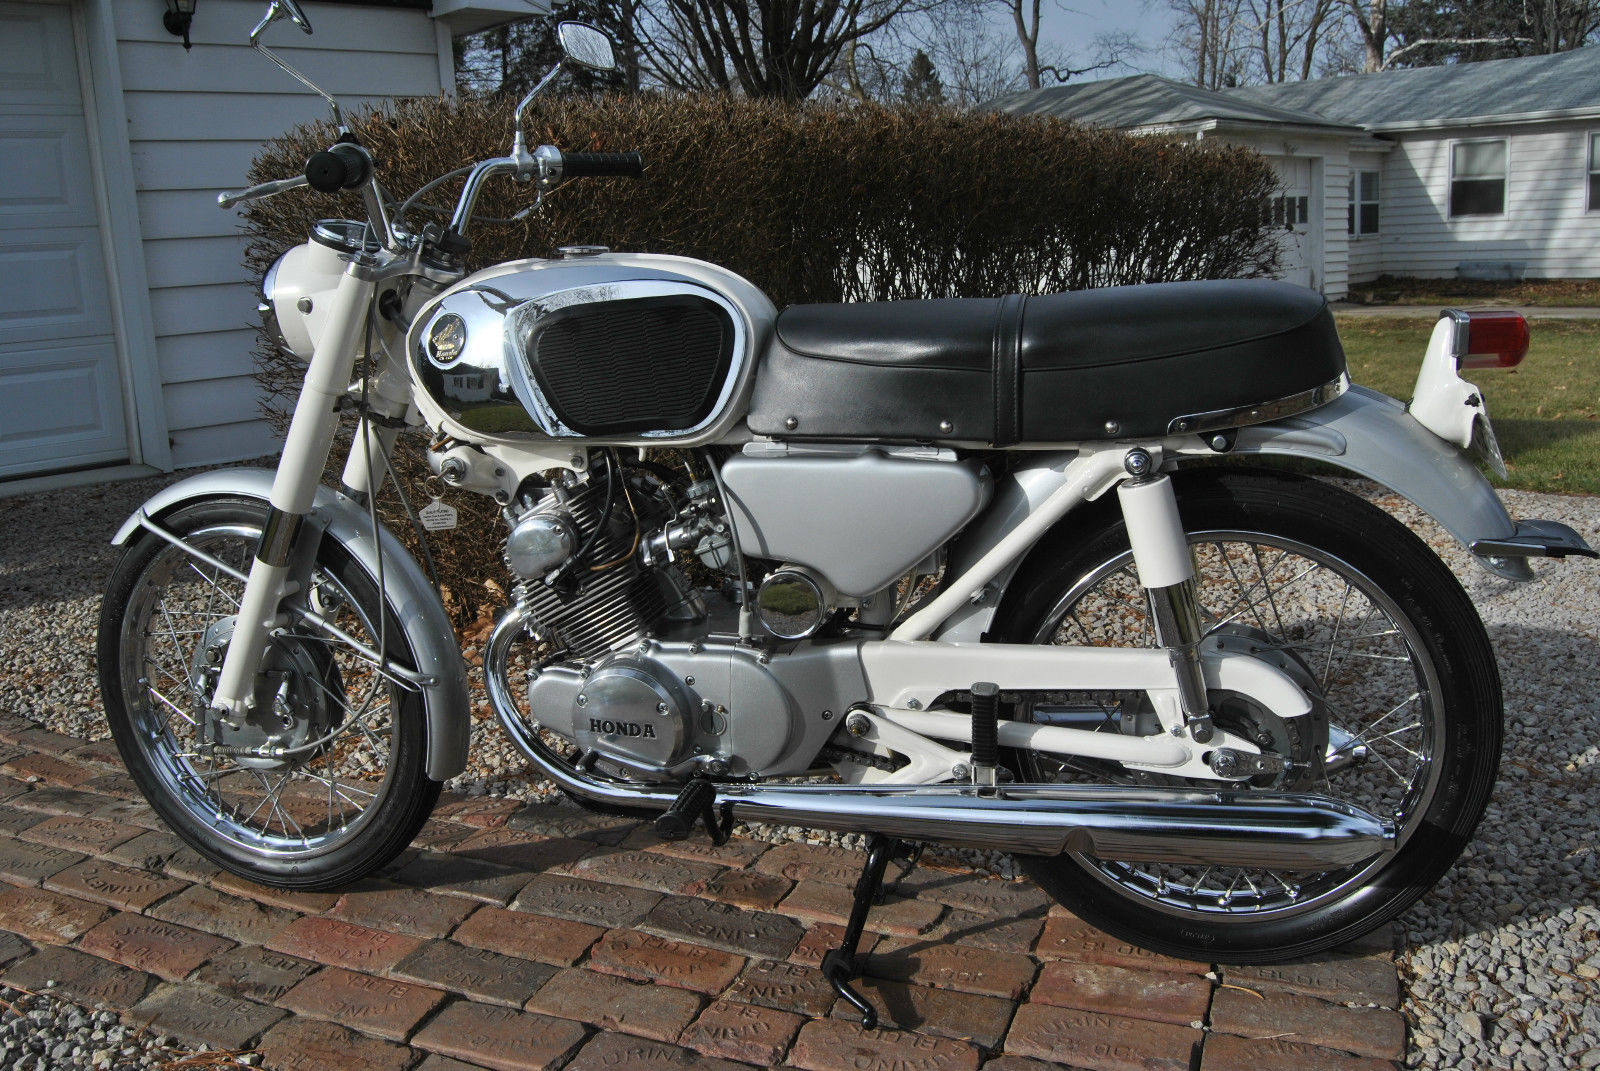 Honda CB160 Sport - 1969 - Left Side View, Petrol Tank, Engine and Transmission, Side Panel and Seat.